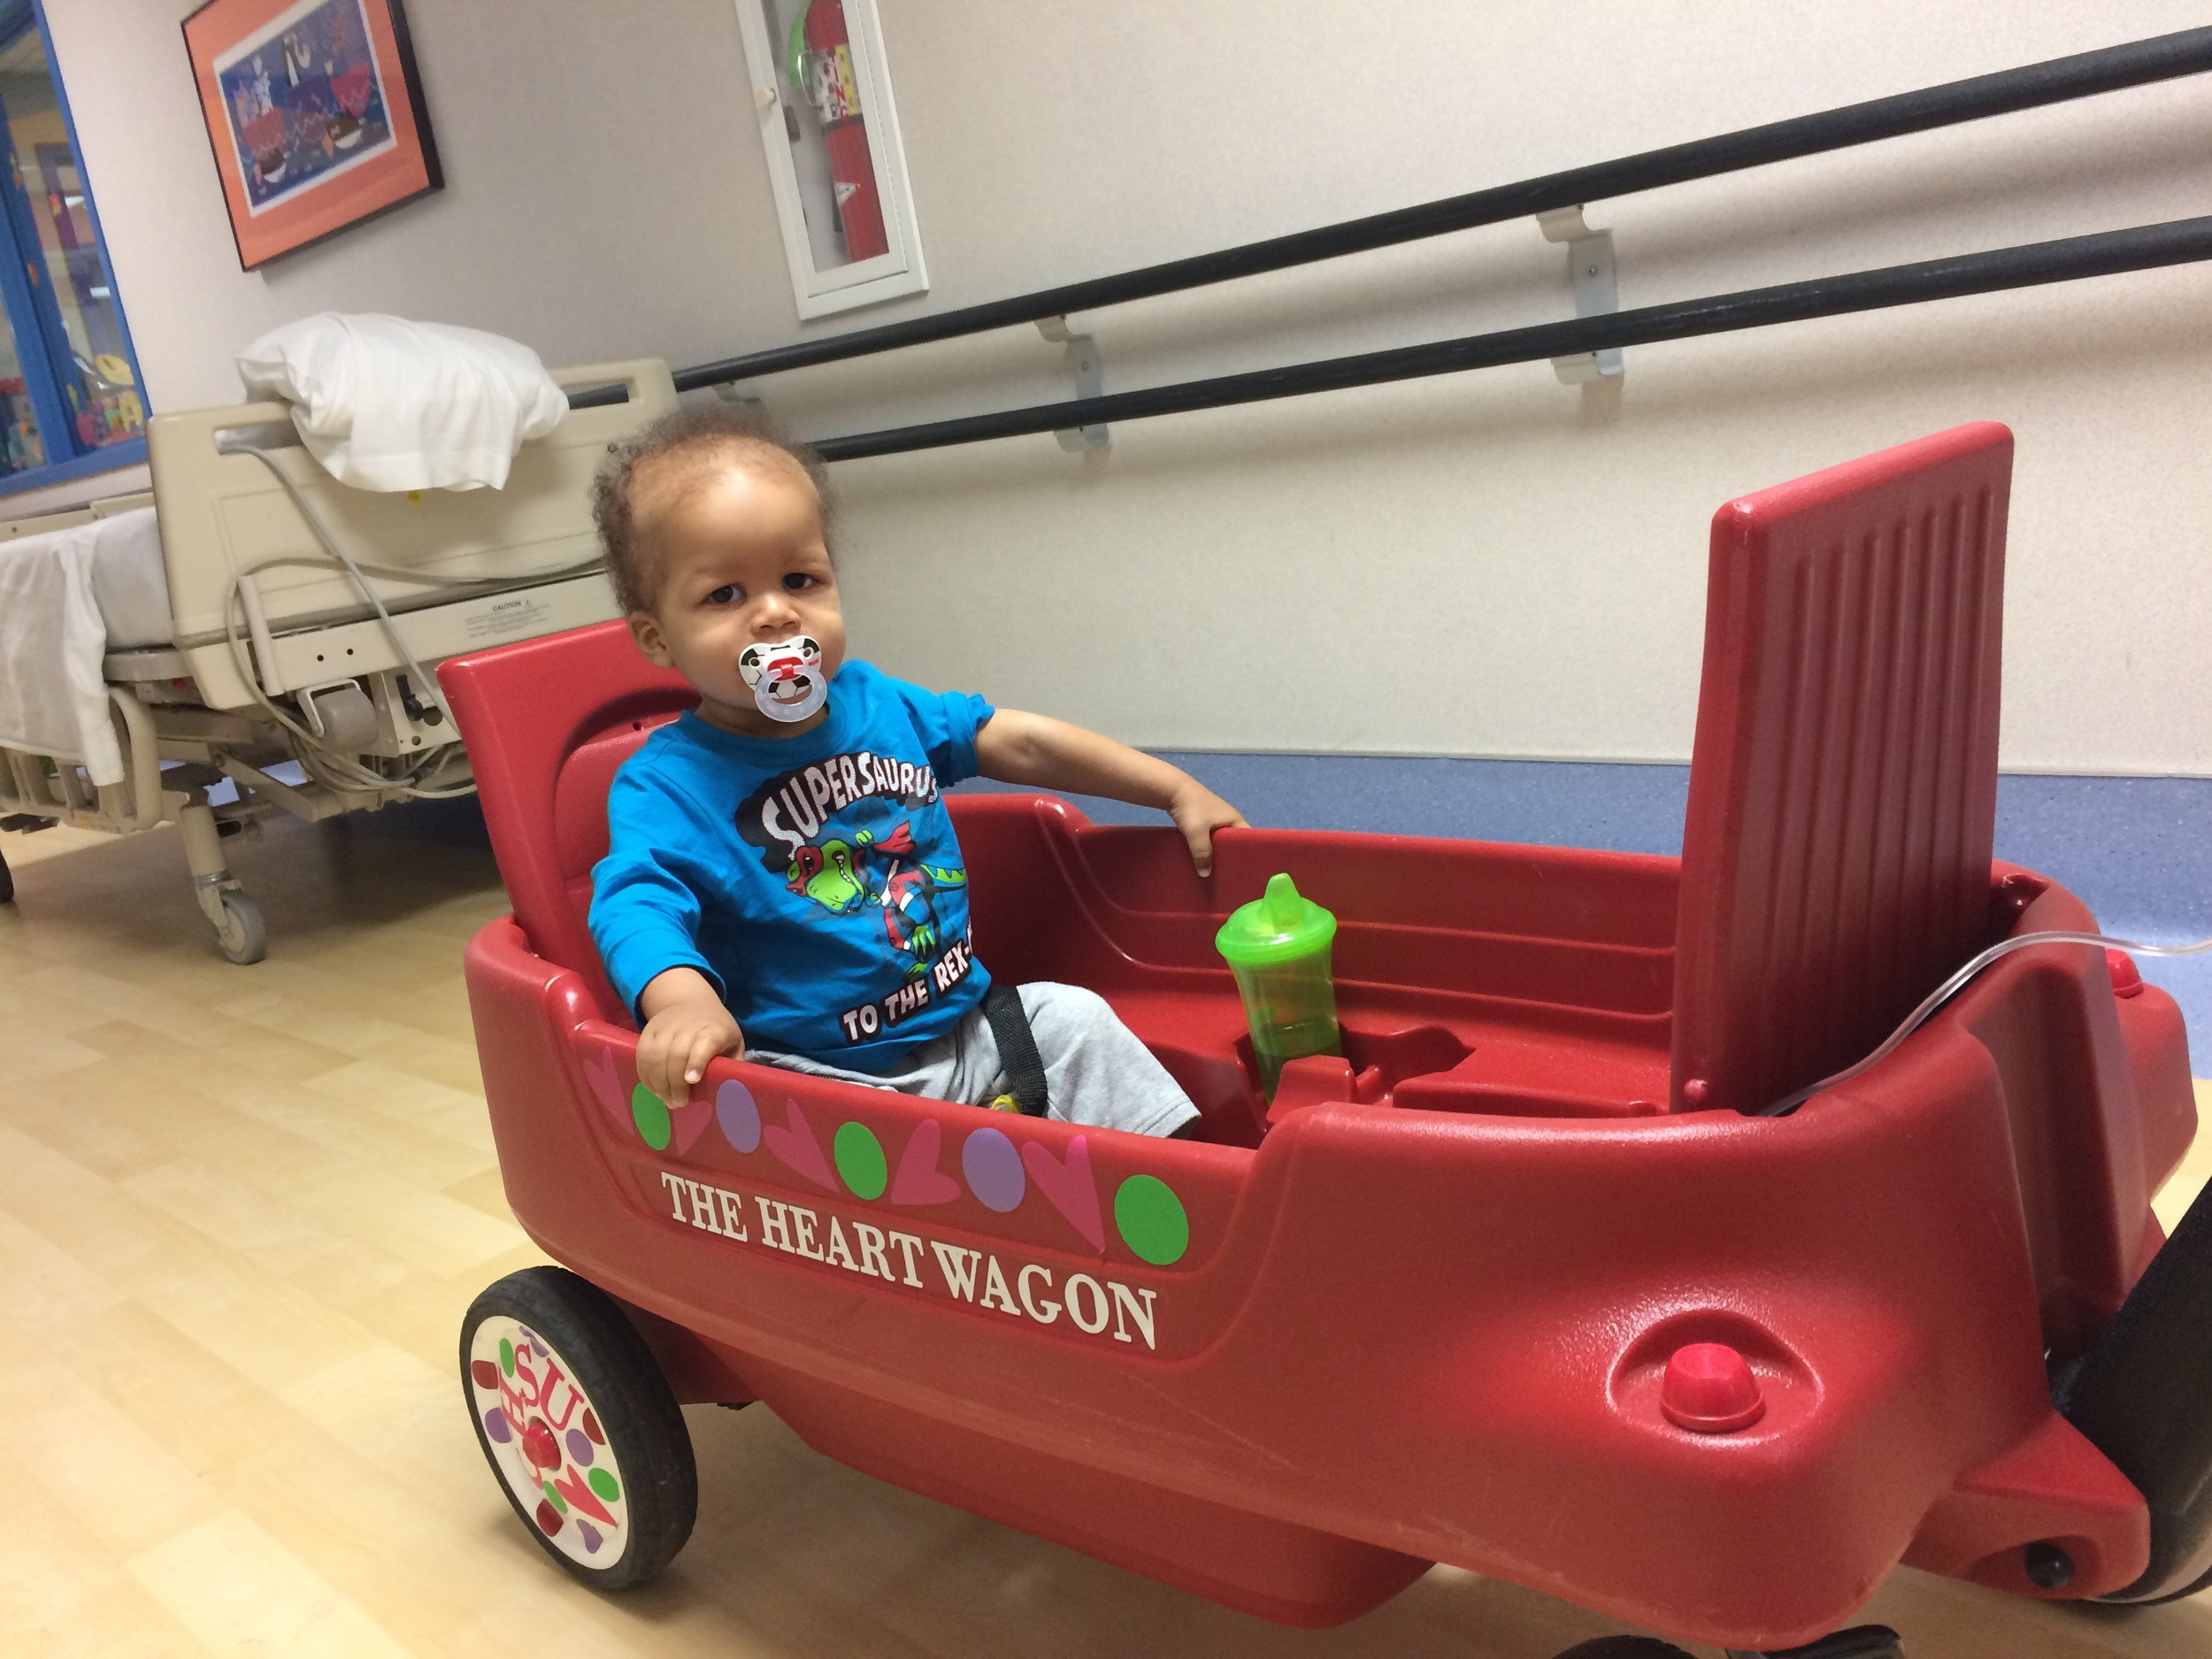 It was kind of appropriate that this wagon was from the Congenital Heart Surgical Unit (CHSU) since that was the unit he was first admitted to when we initially came to the hospital.  If you recall the pictures from day 1 when he was connected to everything, that was in the CHSU